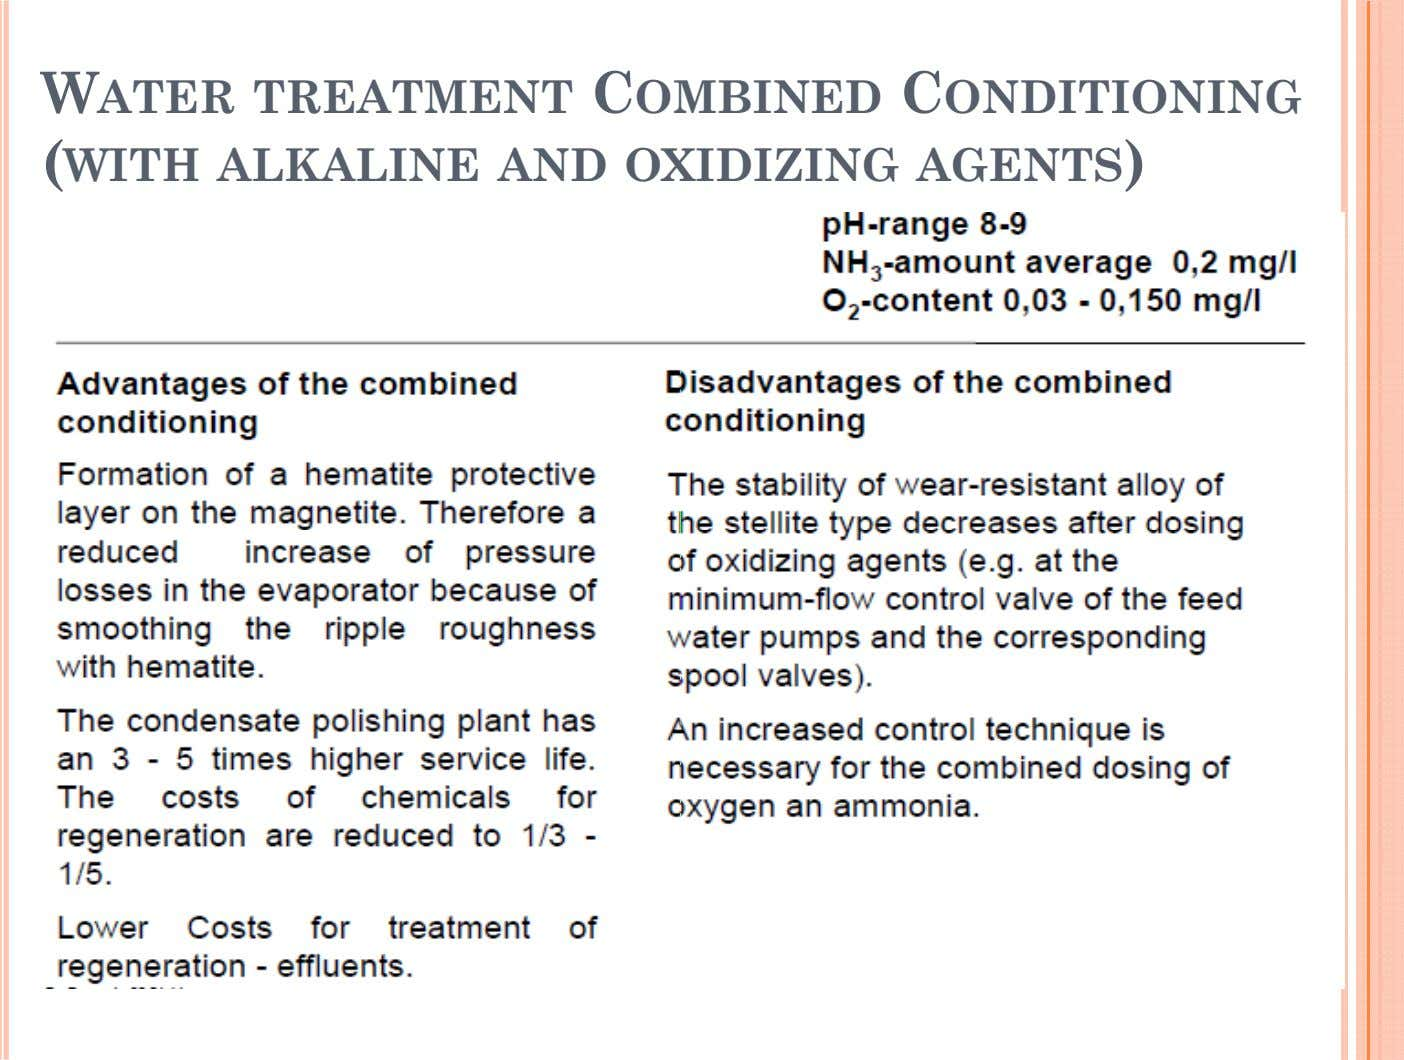 WATER TREATMENT COMBINED CONDITIONING (WITH ALKALINE AND OXIDIZING AGENTS)